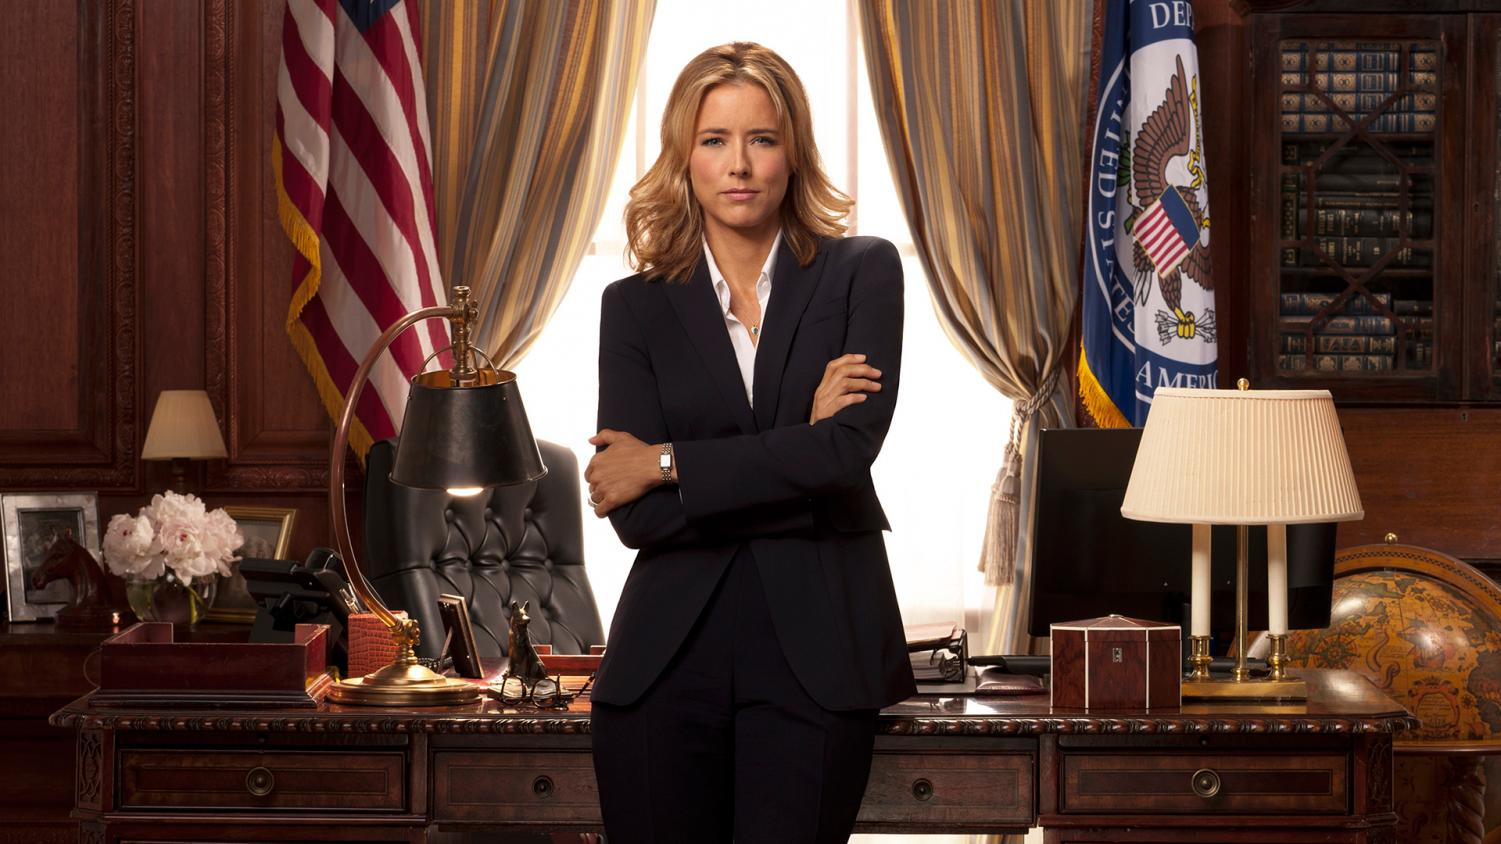 House Of Cards And Madam Secretary Use Clothing Choices To Make A